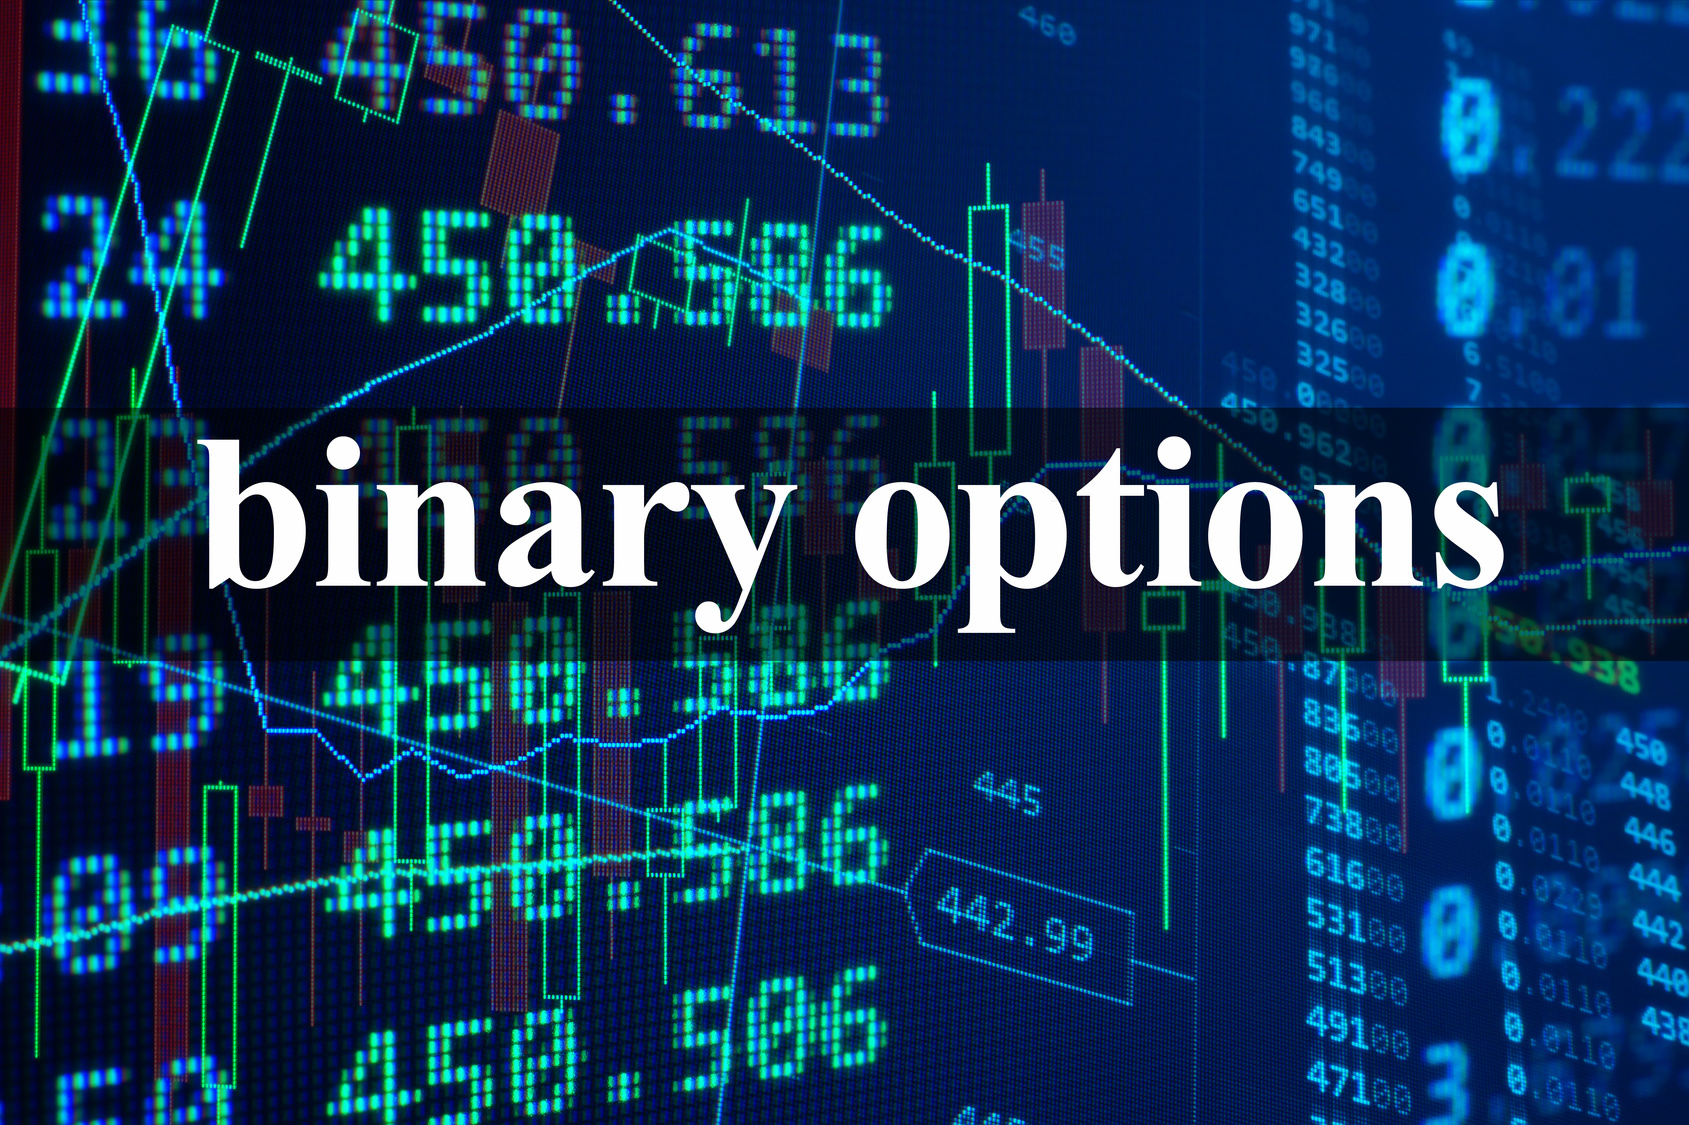 Where to trade binary options